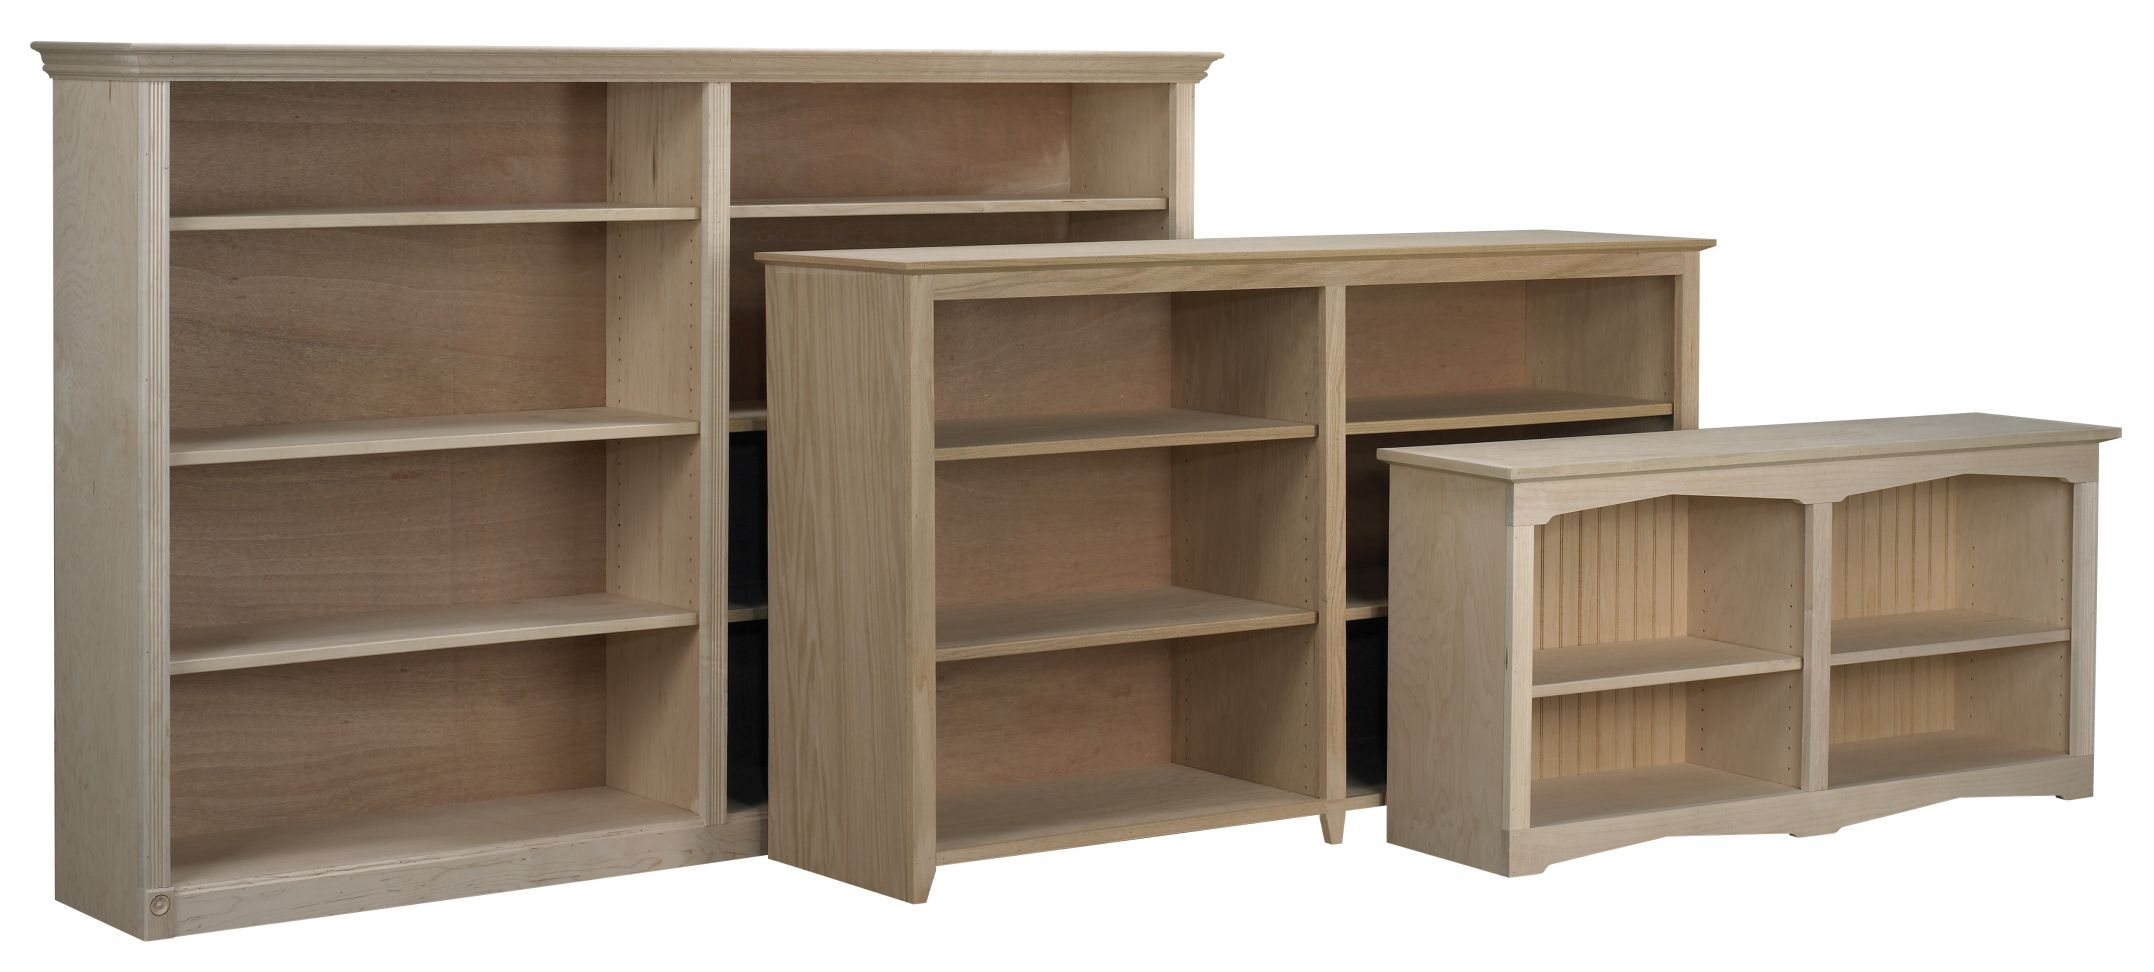 Bookcase 60 Inches Wide Americas Best Furniture Check More At Http Fiveinchfloppy Com Bookcase 60 Inches Wide Wide Bookcase Bookcase Home Office Furniture